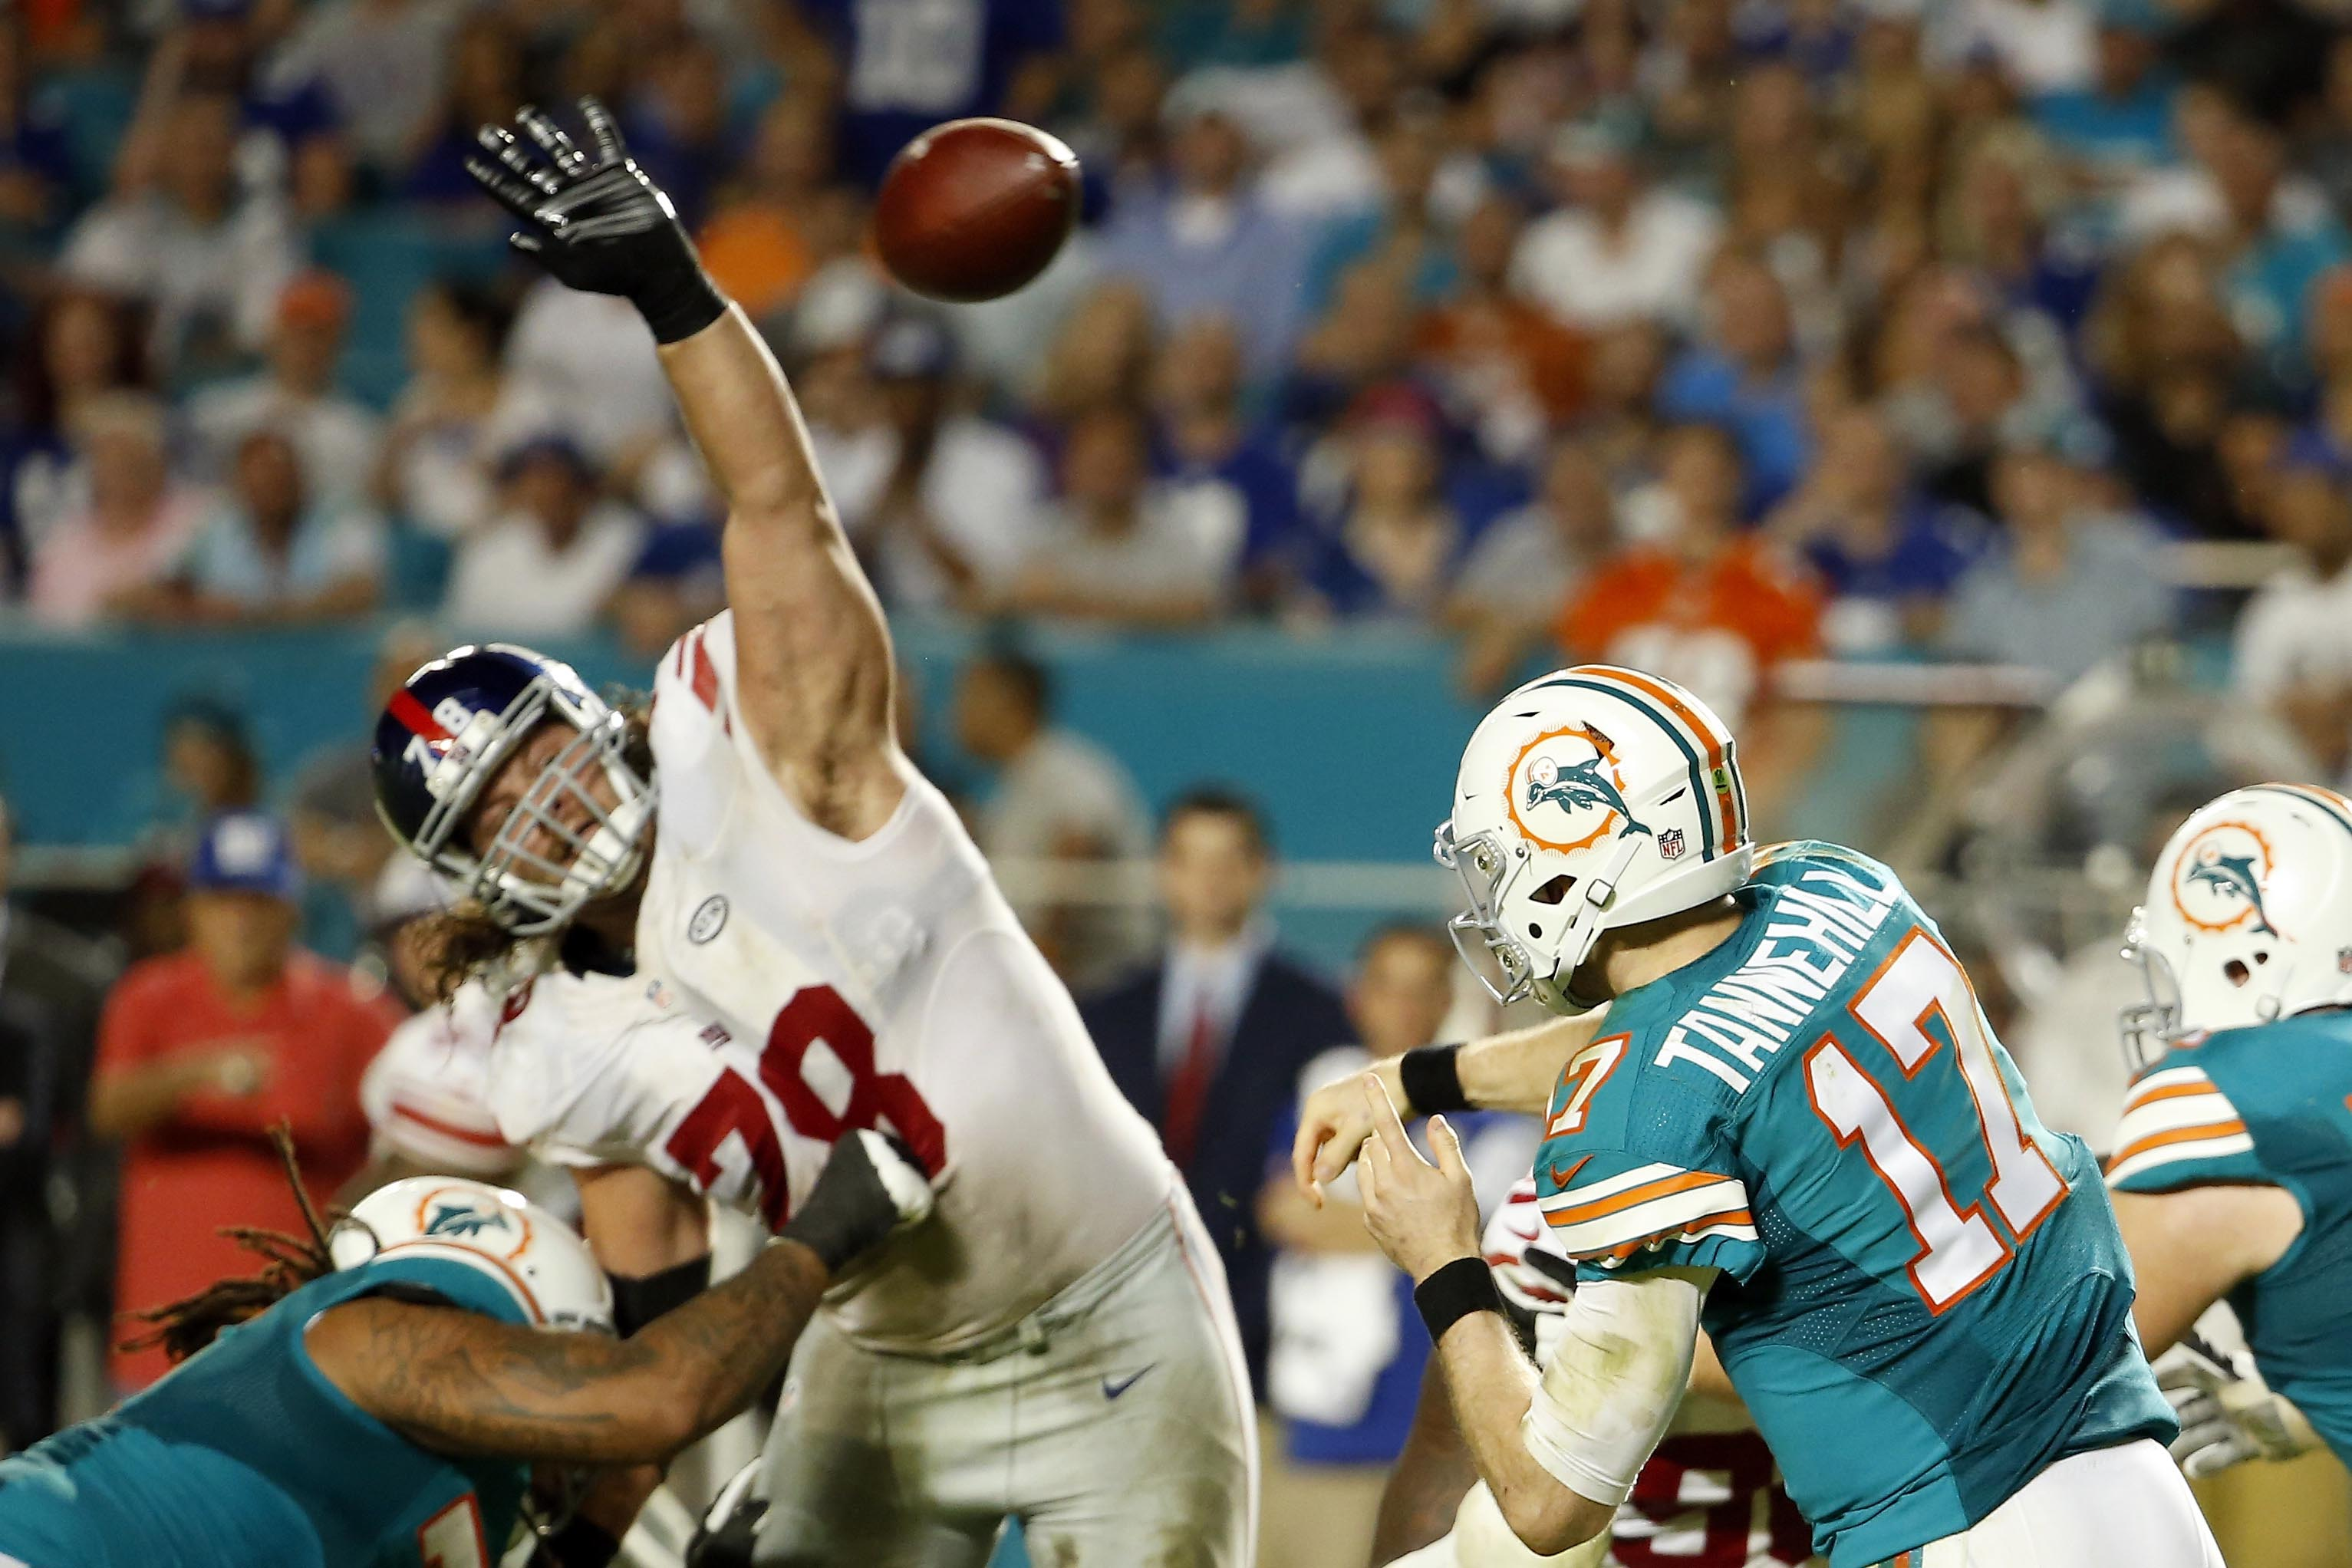 Markus Kuhn suffered a knee injury Monday against the Dolphins